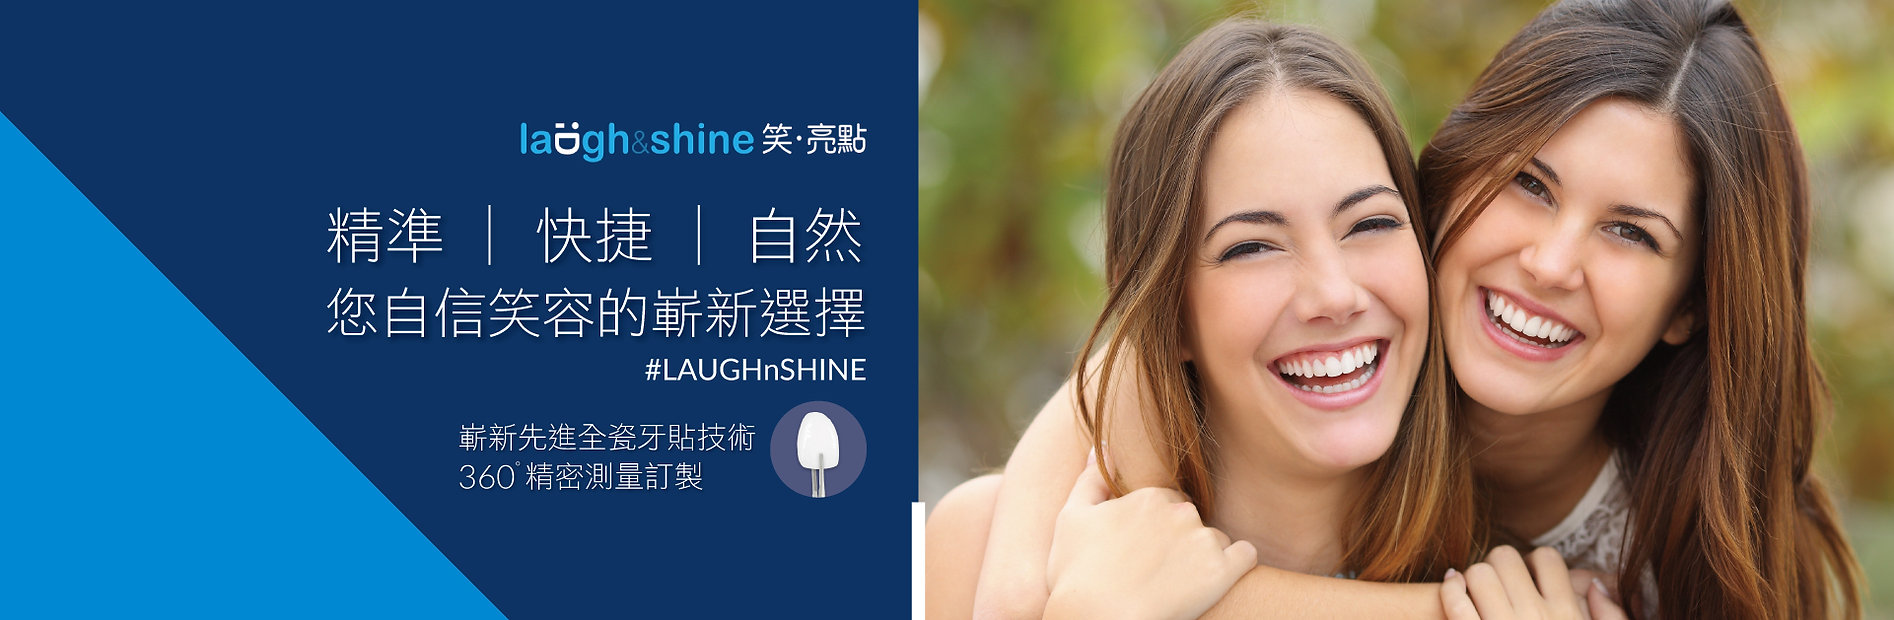 Laugh and Shine 笑亮點